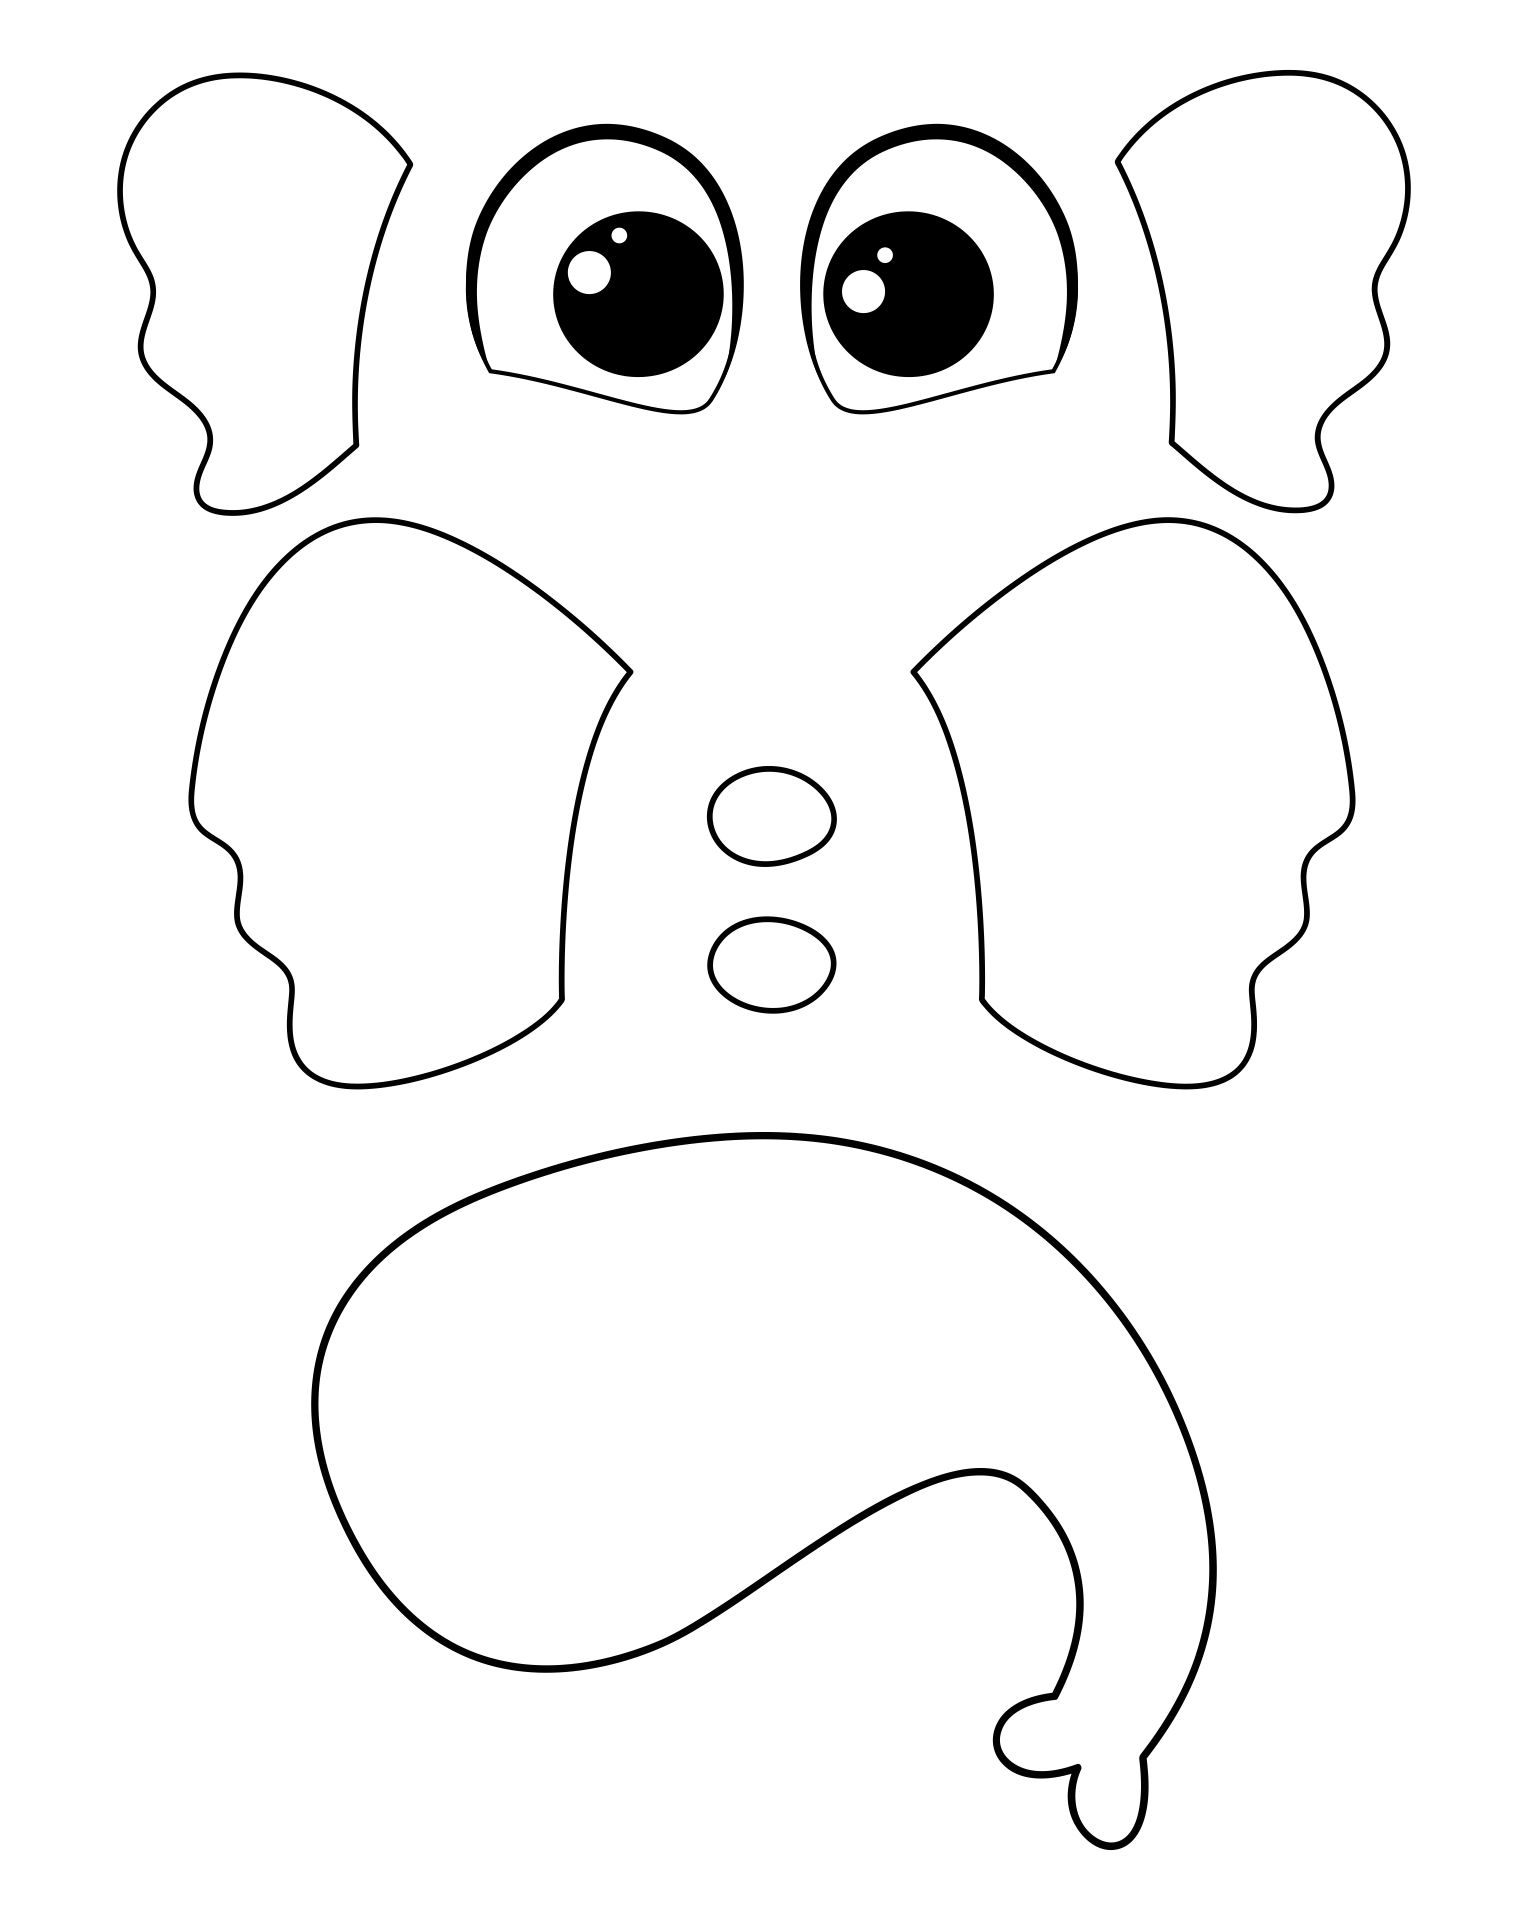 Printable Elephant Cut Outs Template